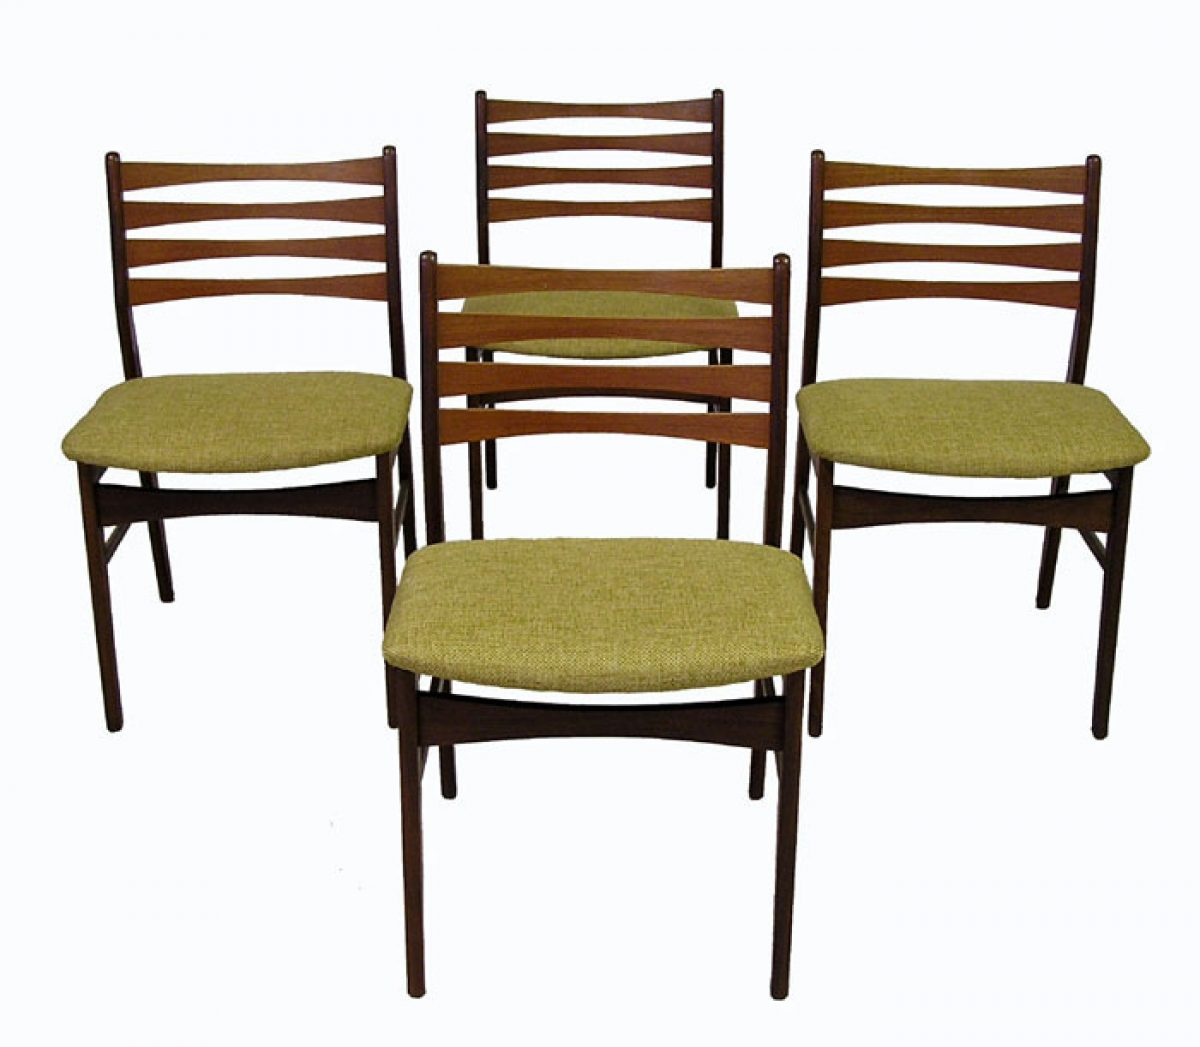 Danish Teak Dining Chairs 1960s Danish Teak Dining Chairs Set Of 4 Hoopers Modern